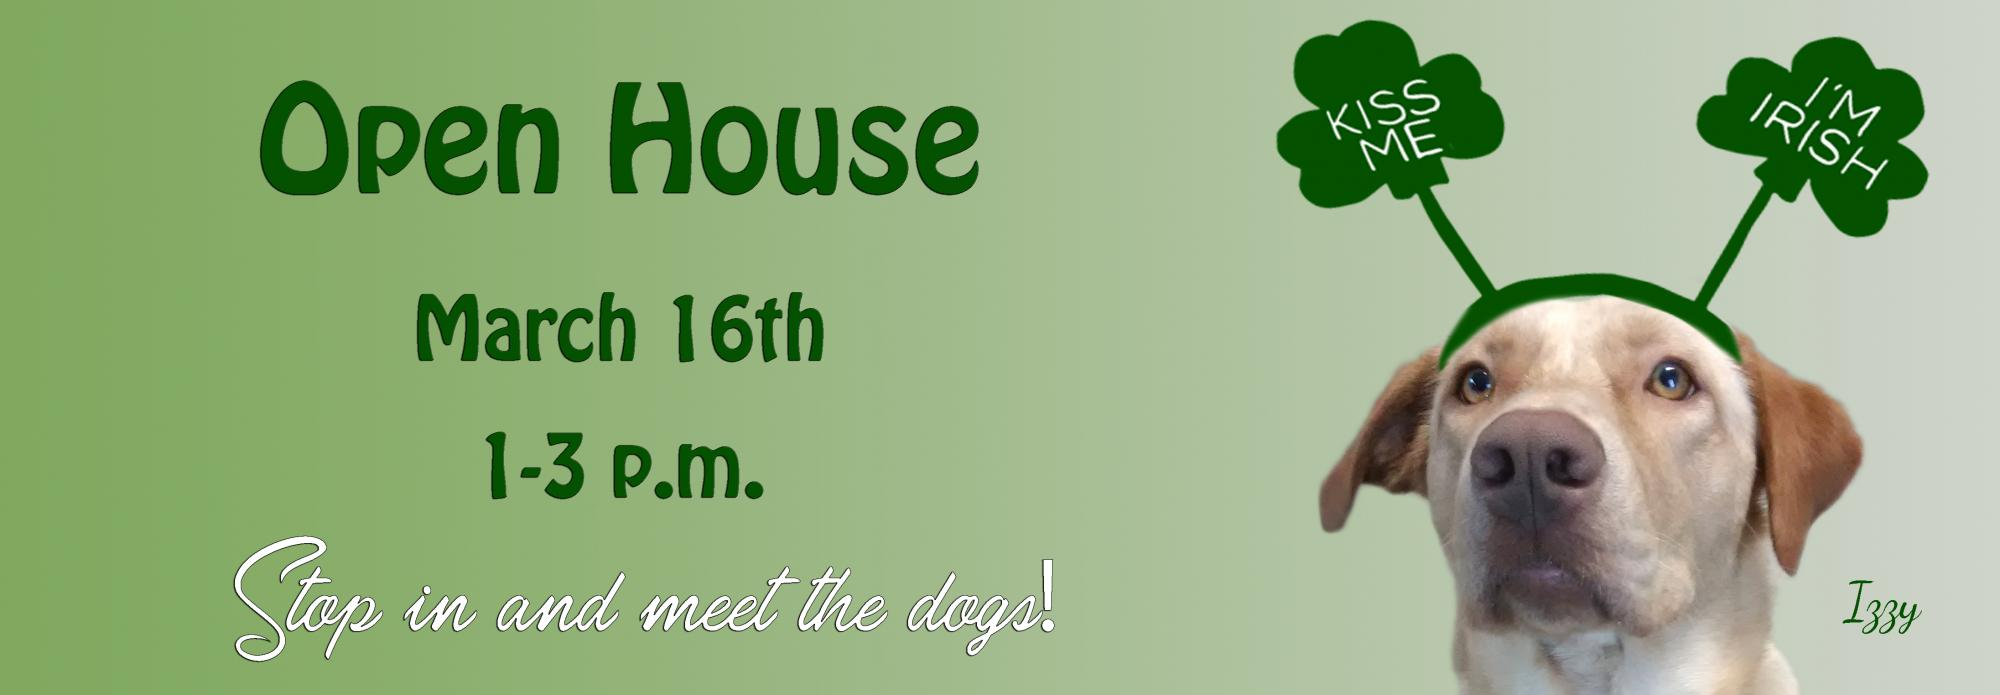 Adoption Day Open House Northern Chautauqua Canine Rescue Westfield New York